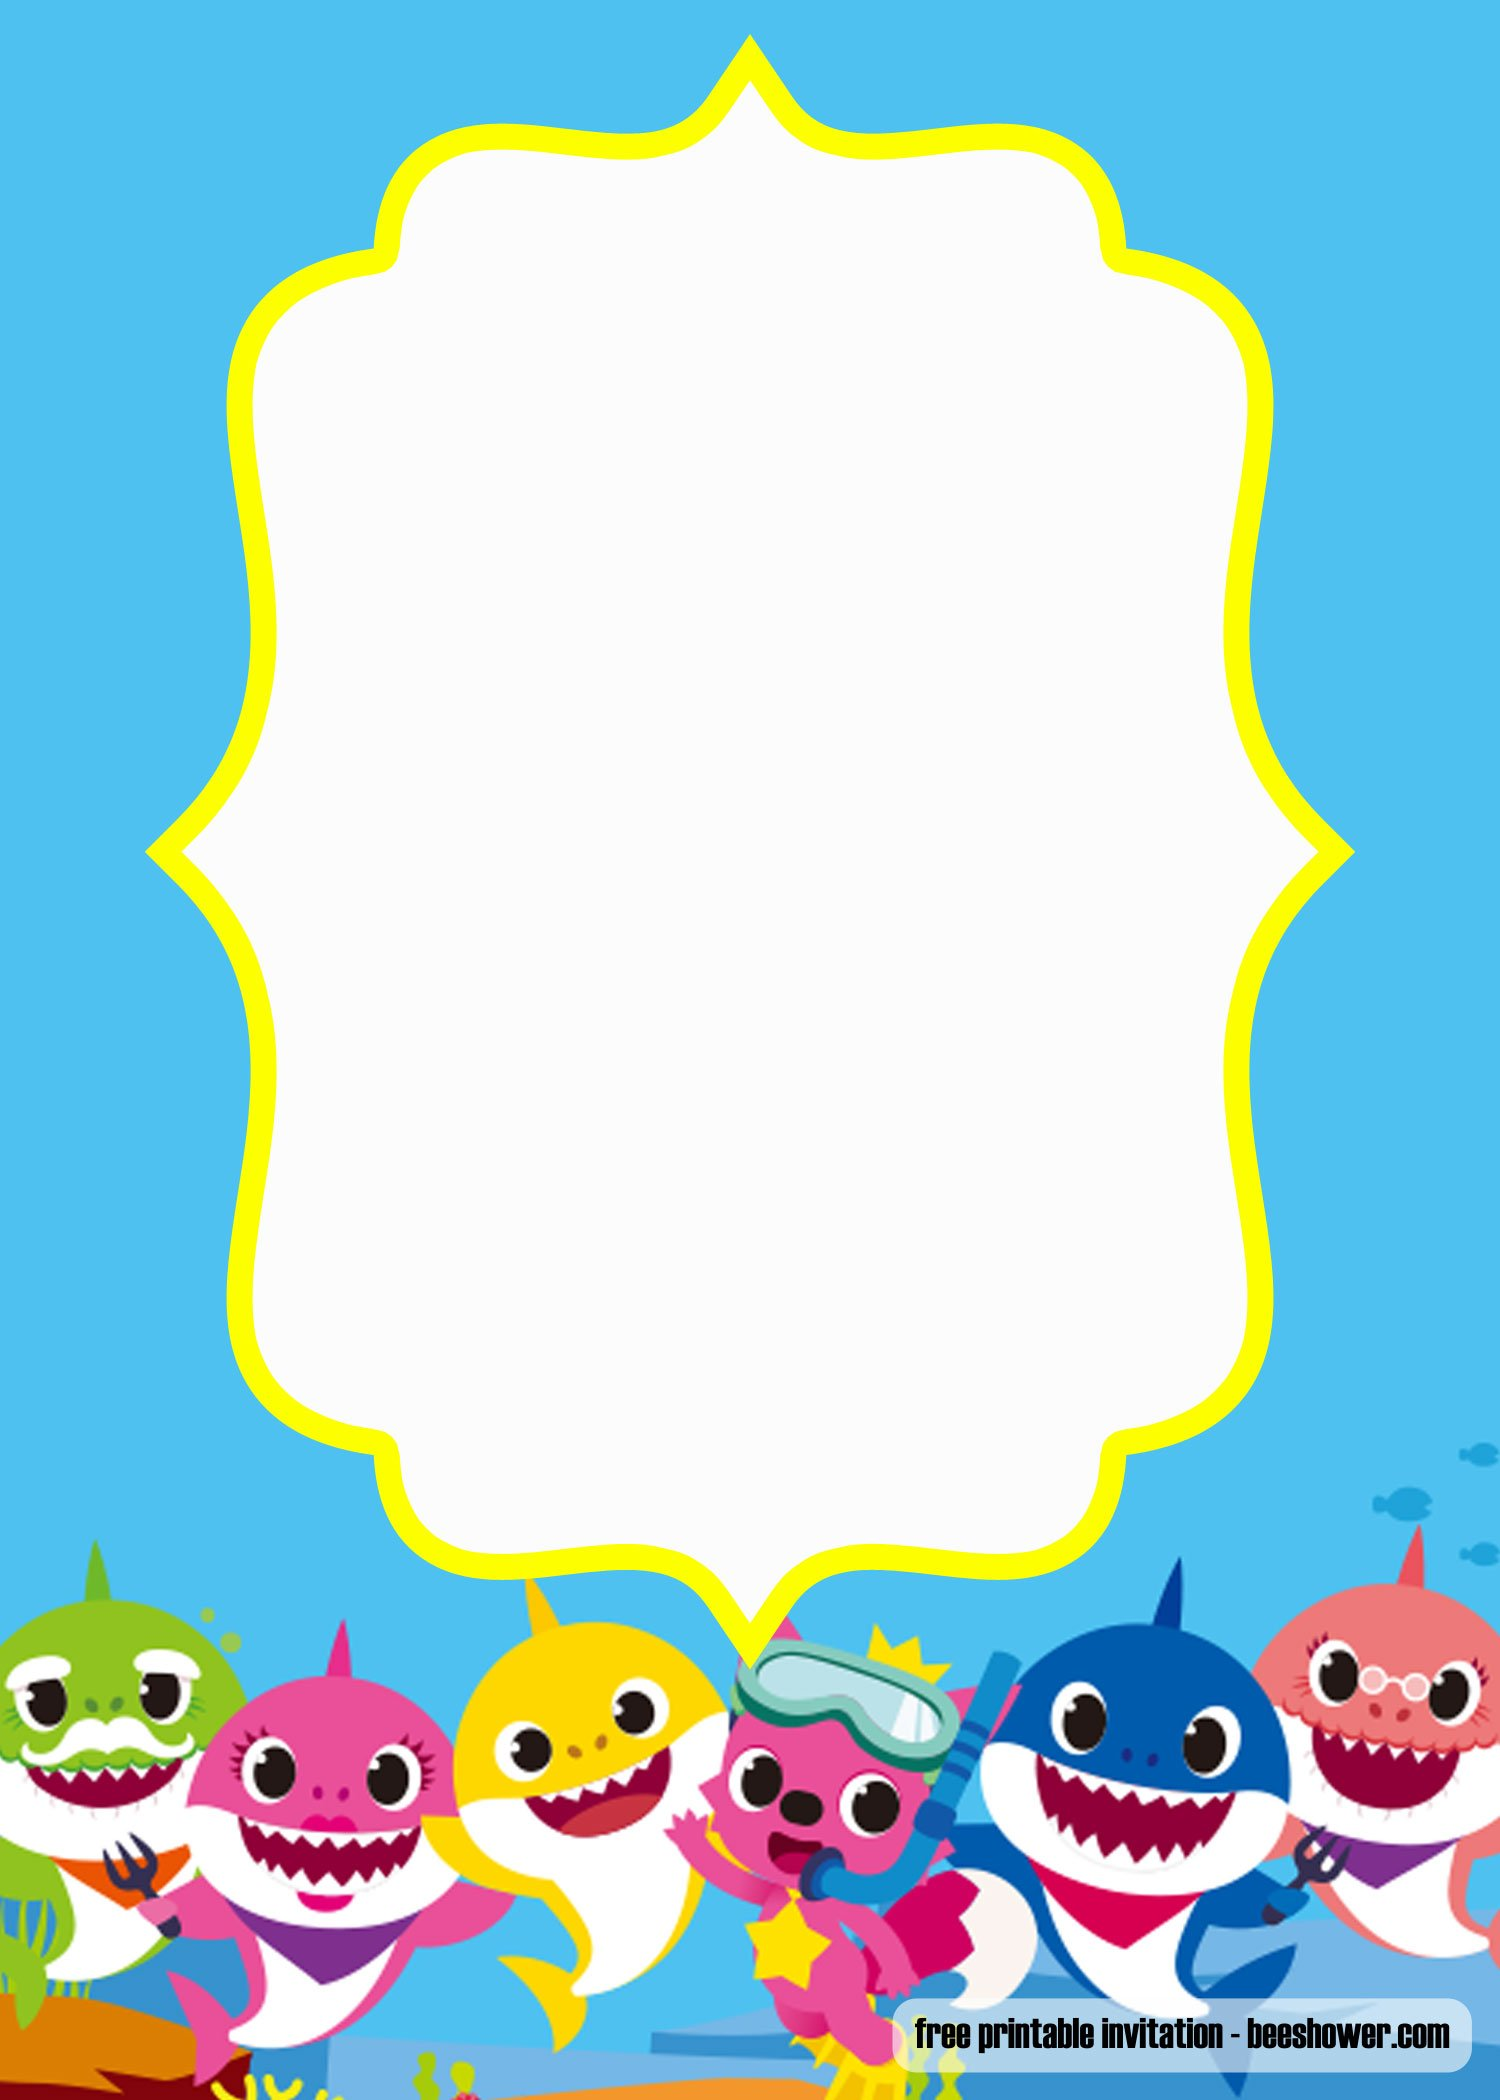 We Have Designed A New Baby Shark Pinkfong Template Below